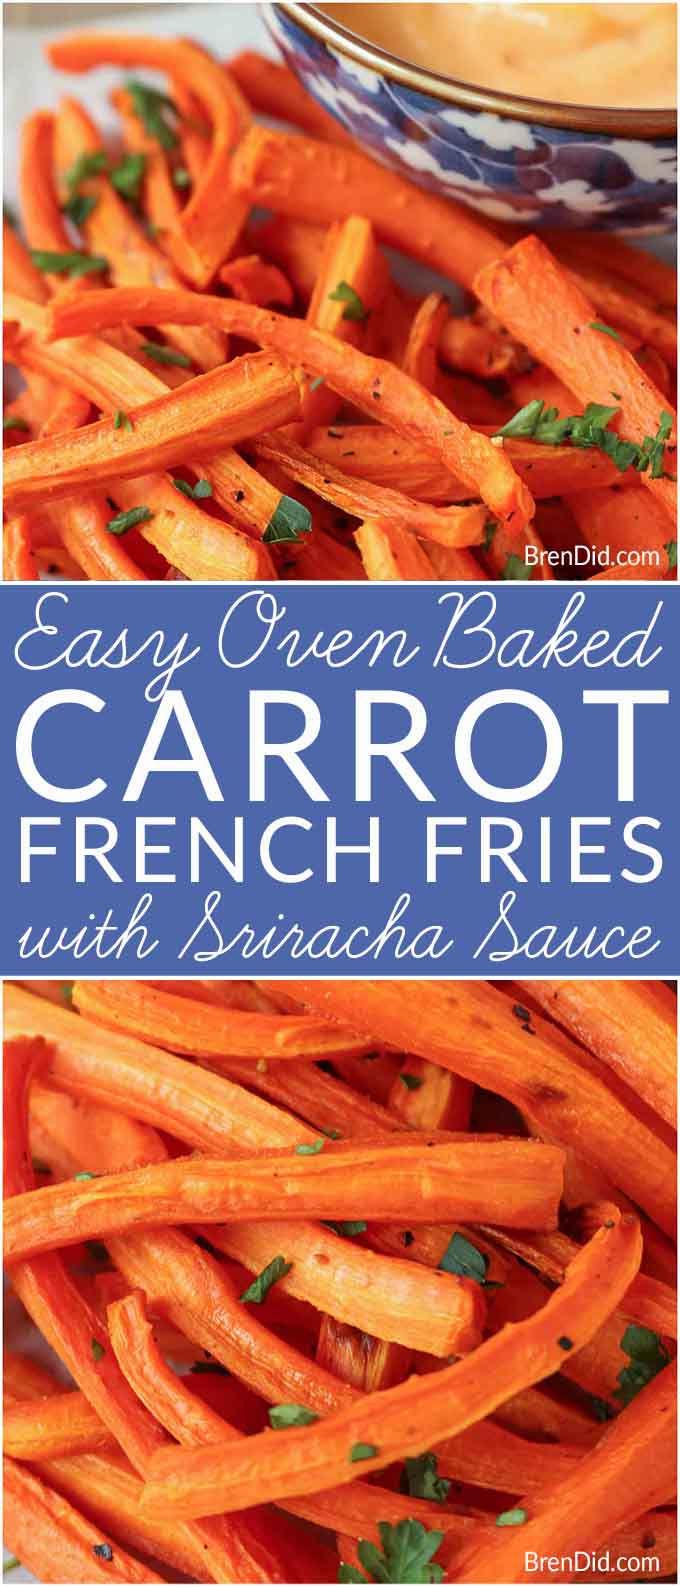 Oven Baked Carrot Fries with Easy Sriracha Dipping Sauce - Satisfy your french fry cravings with healthy oven baked carrot fries.  These vitamin-packed fries are tasty and healthy! Sriracha aioli. Sriracha mayonnaise. #frenchfries #carrots #aioli #healthysnack #healthyside #healthyrecipe #sweetpotatofries #carrot #carrotfries #srirachaaioli #srirachamayonnaise #sriracha